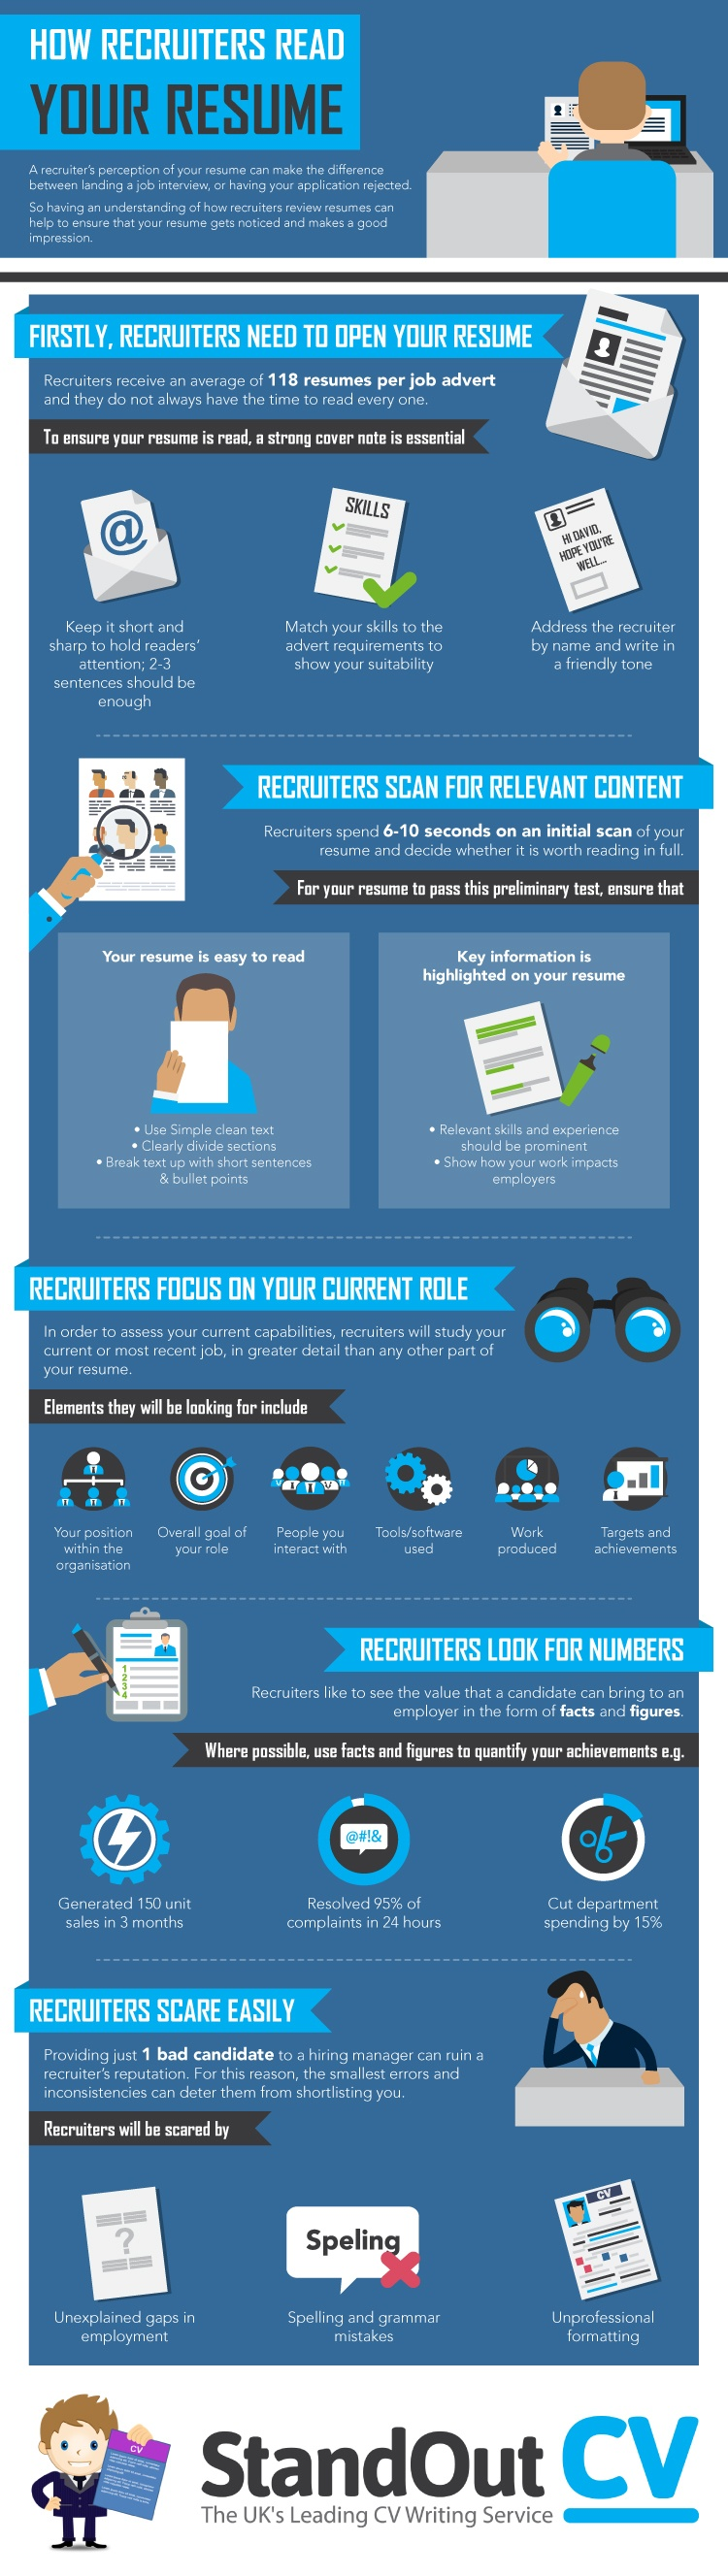 how-recruiters-read-your-resume-infographic.jpg